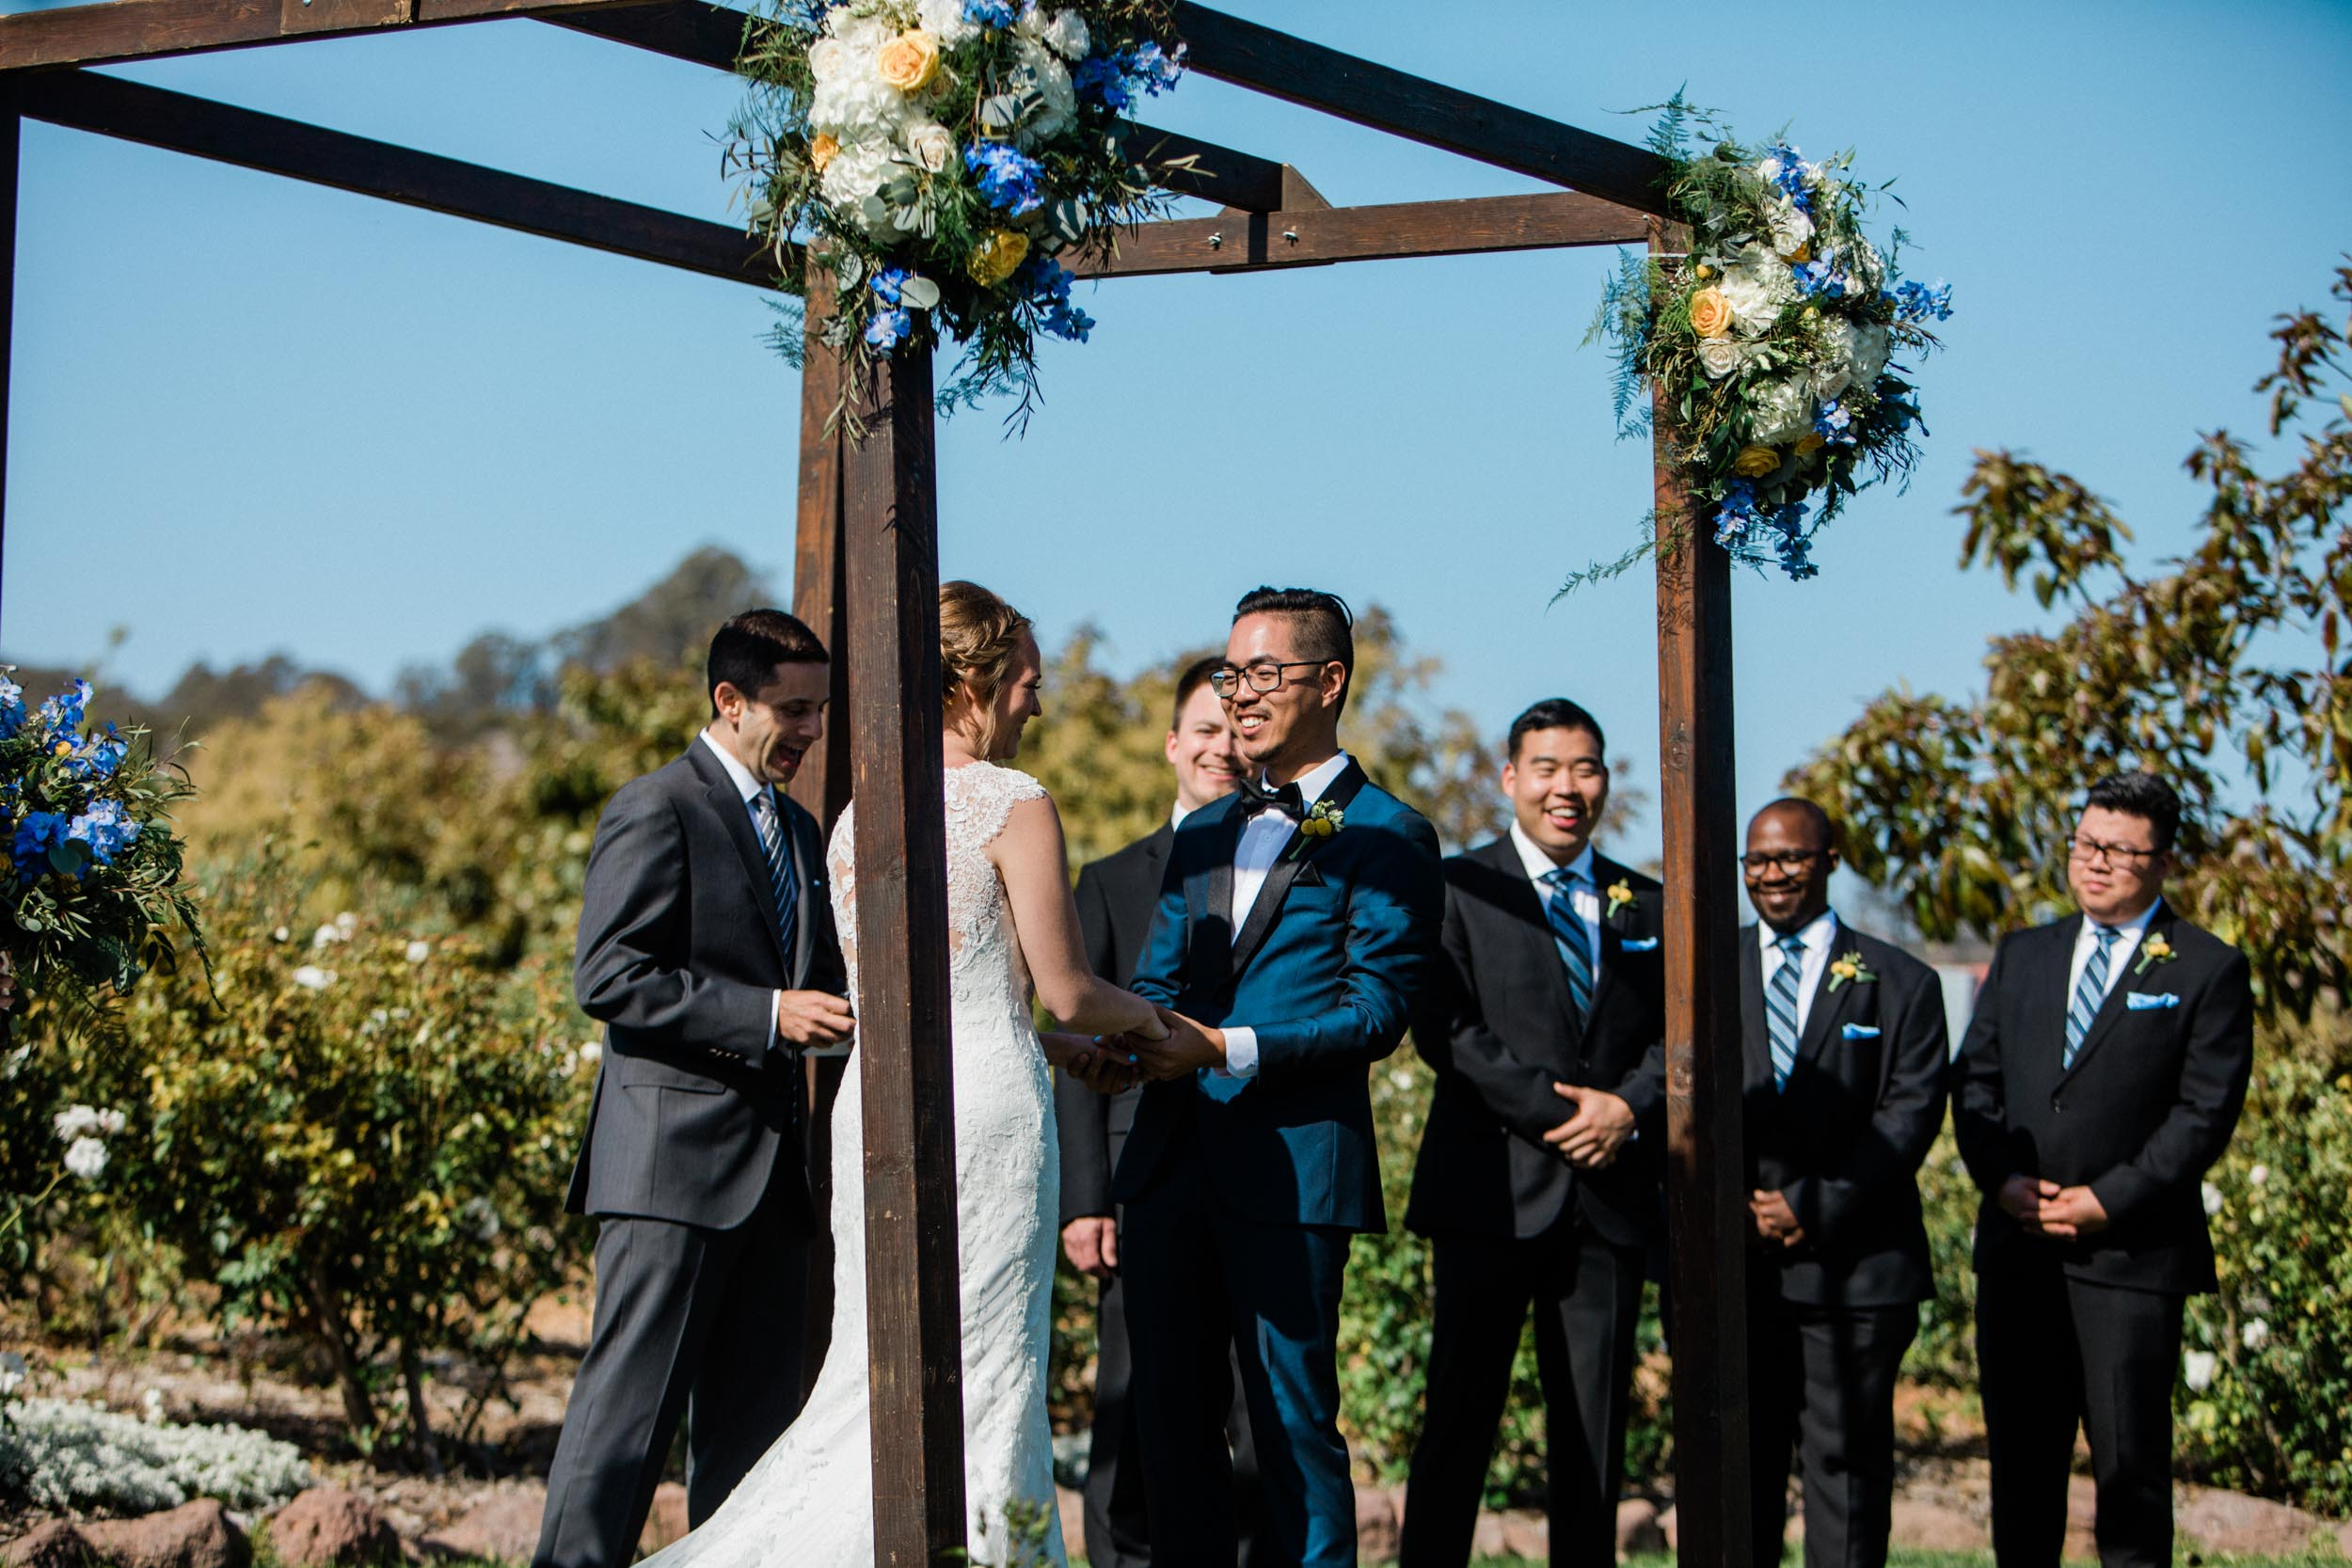 BKM-Photography-Gerry-Ranch-Southern-California-Wedding-0078.jpg